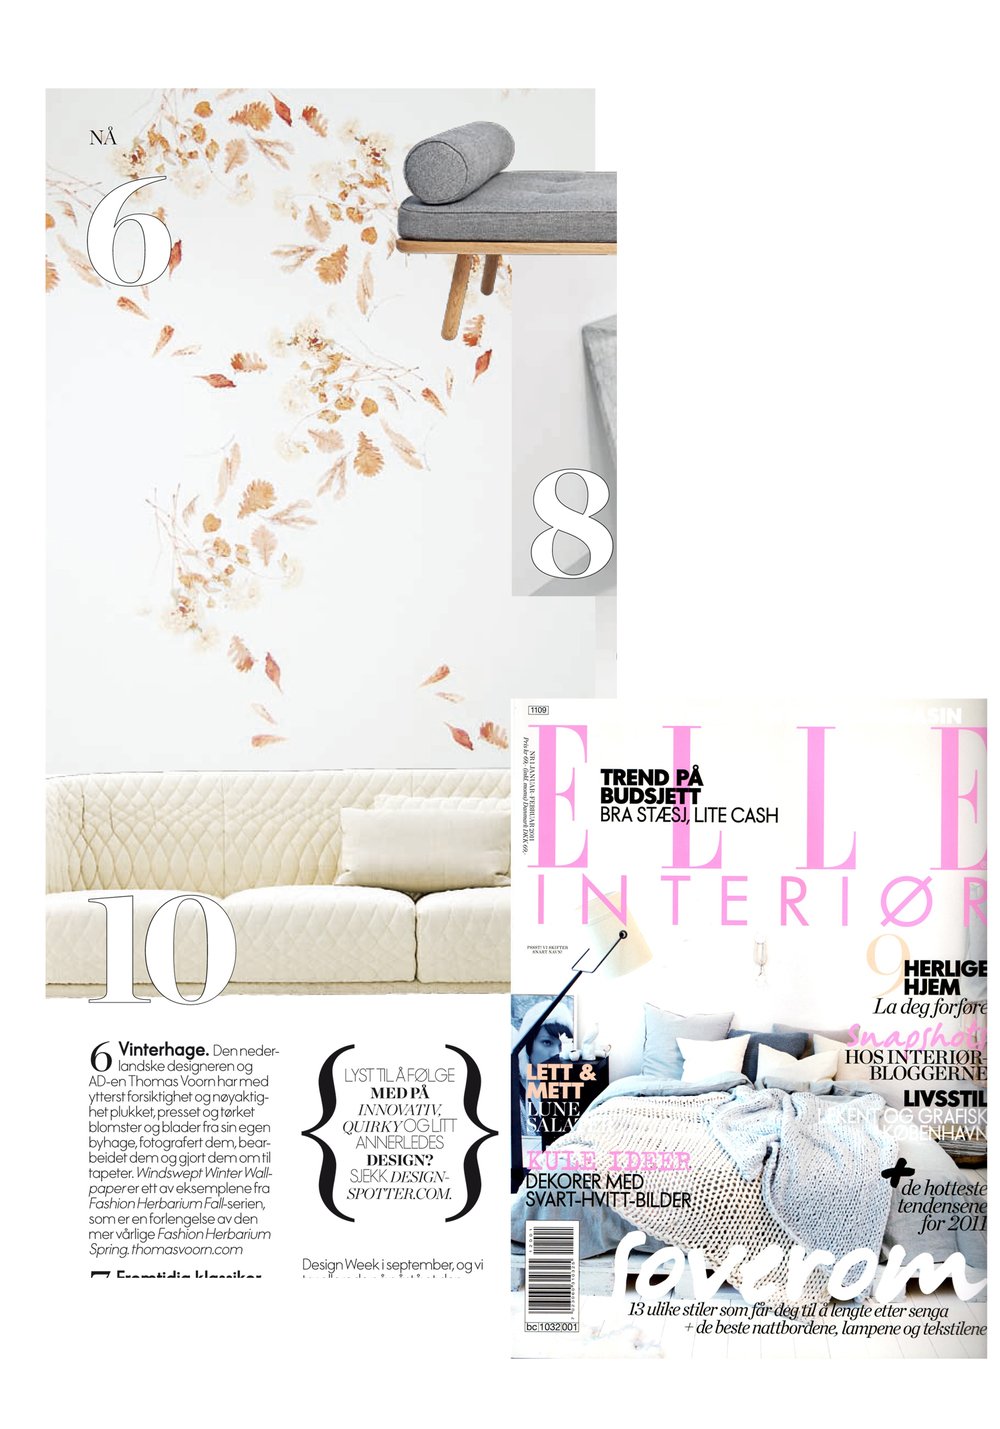 Press-ELLE-Interior-Norway-magazine-on-Thomas-Voorn.jpg